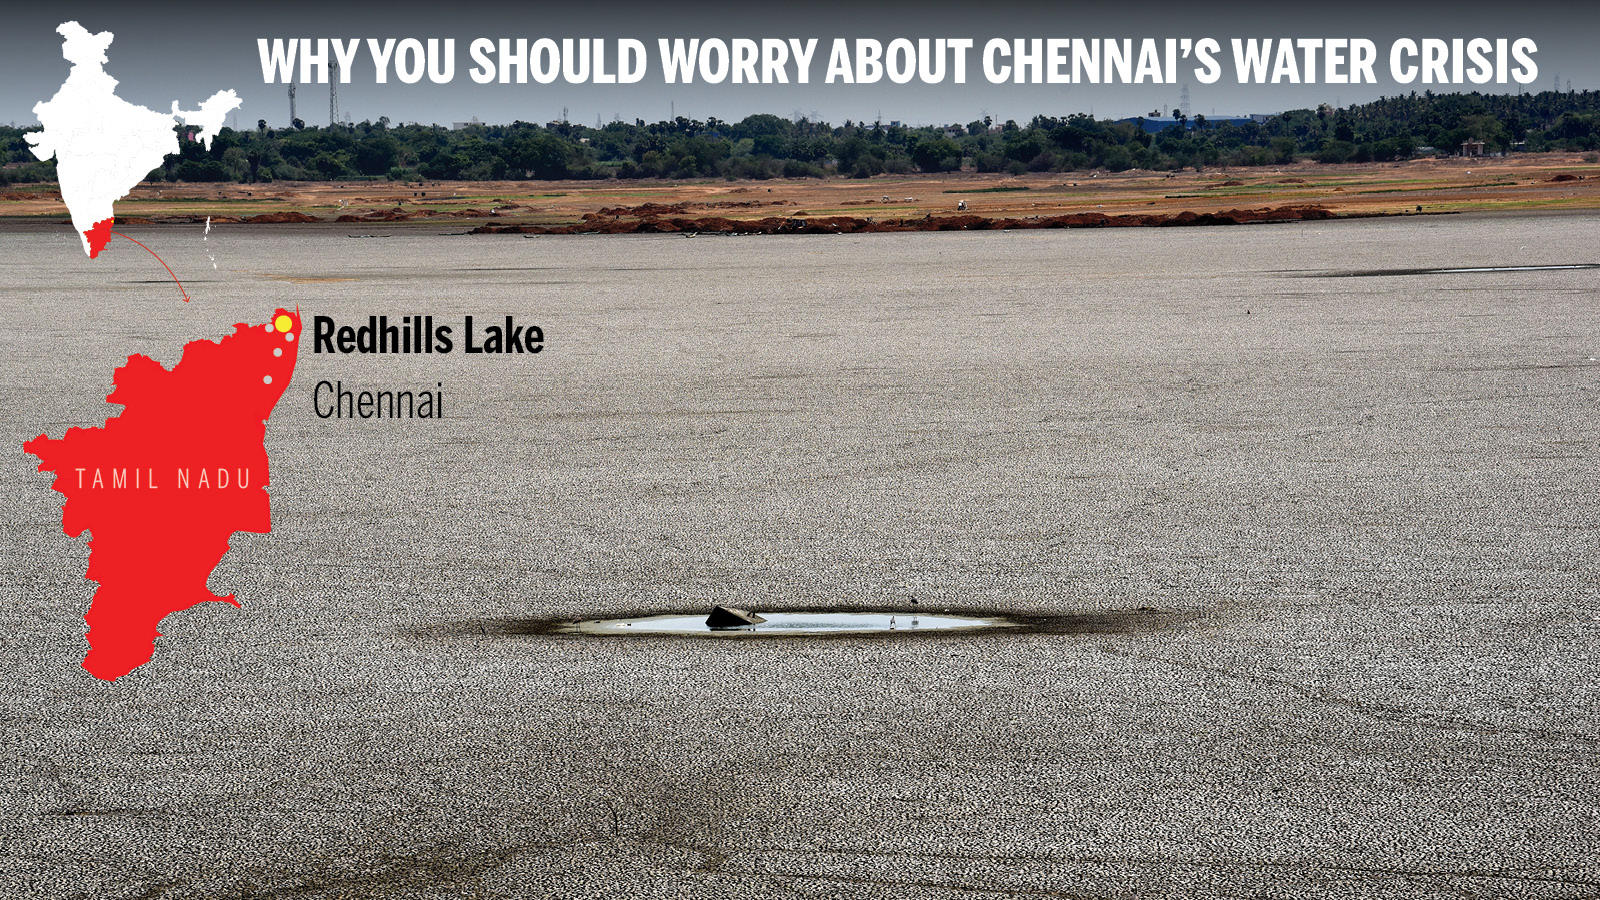 Why Chennai's water crisis should worry you - Times of India